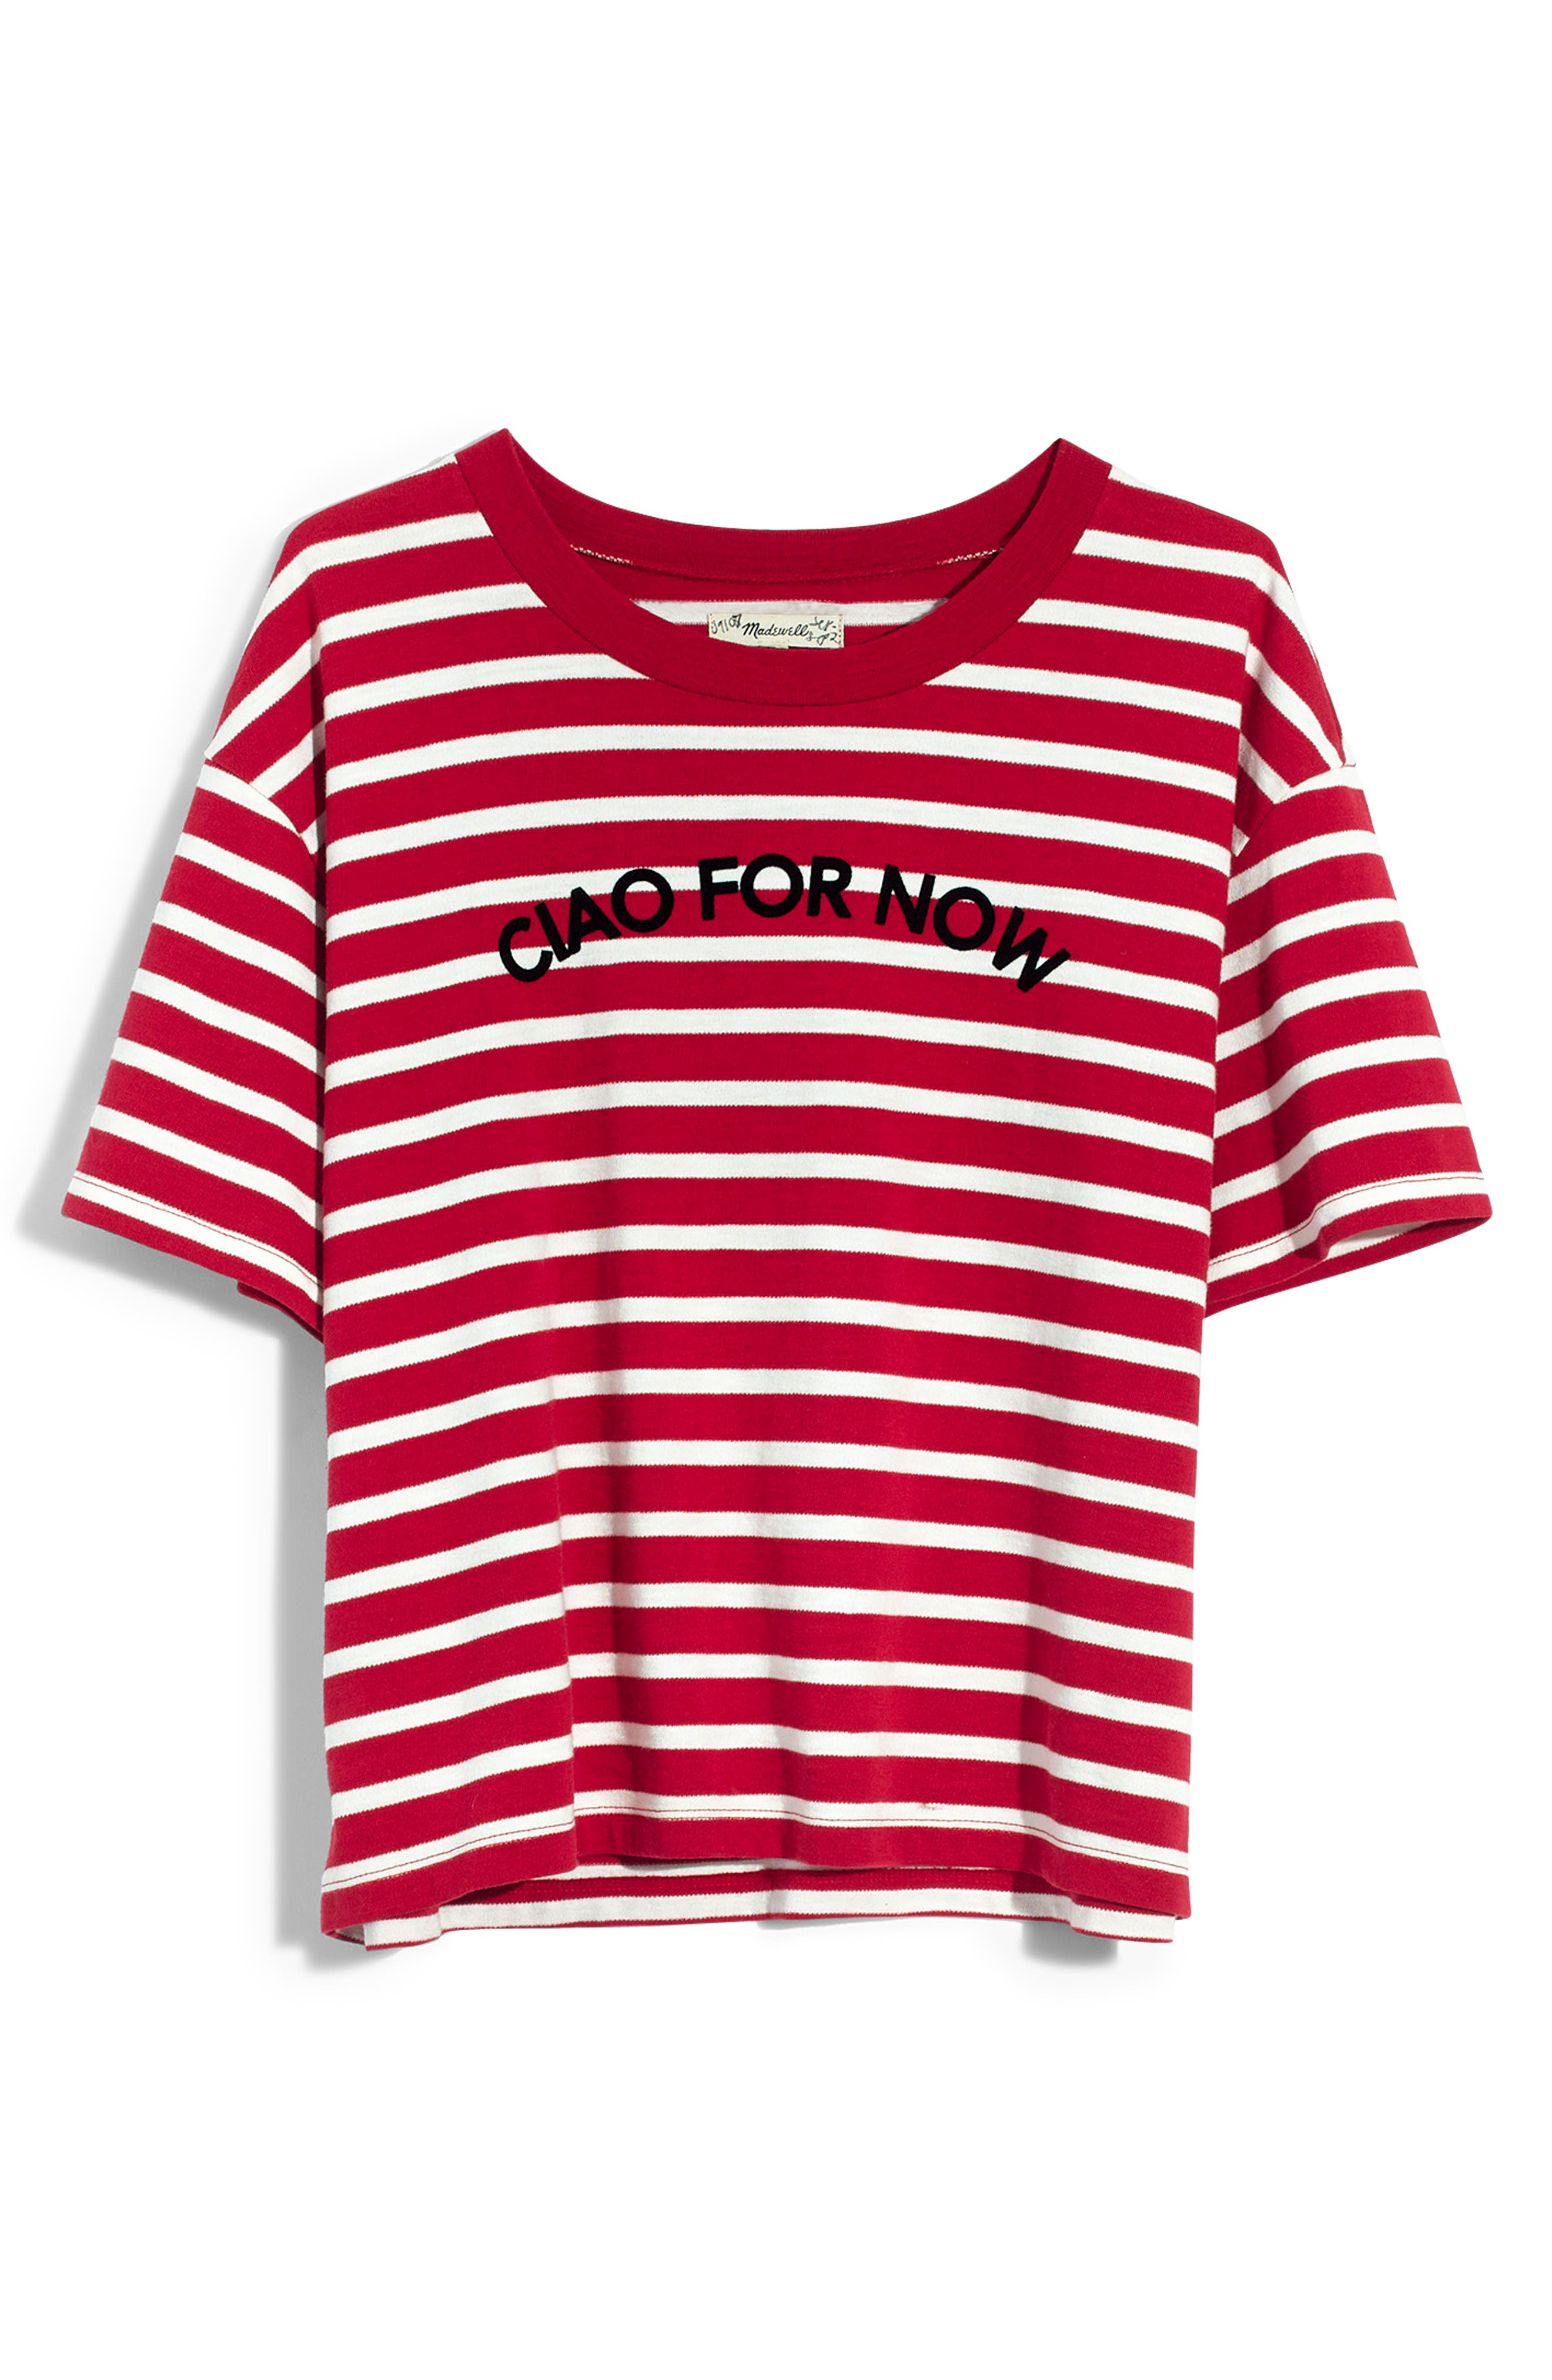 MADEWELL,                             Stripe Ciao for Now Tee,                             Alternate thumbnail 5, color,                             600